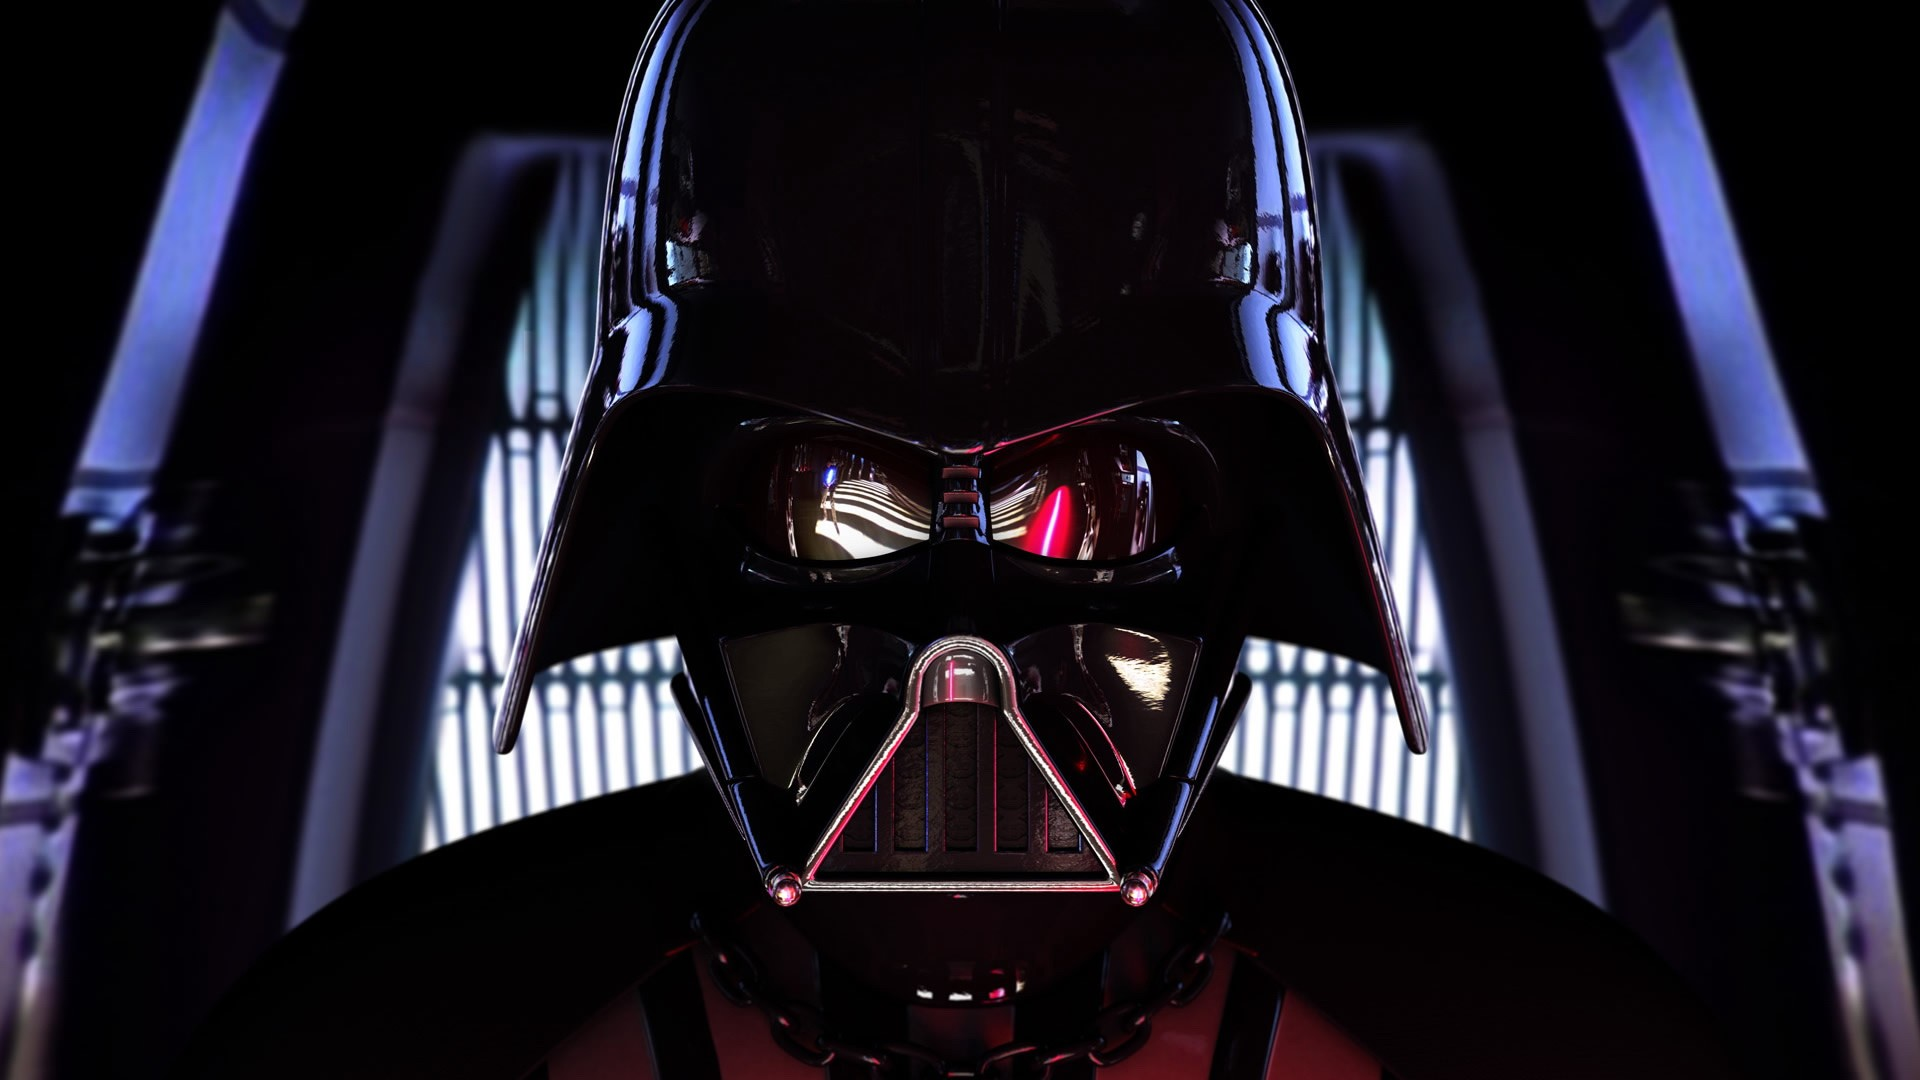 Darth Vader Wallpapers Image  Wallpaper Zone 1920x1080